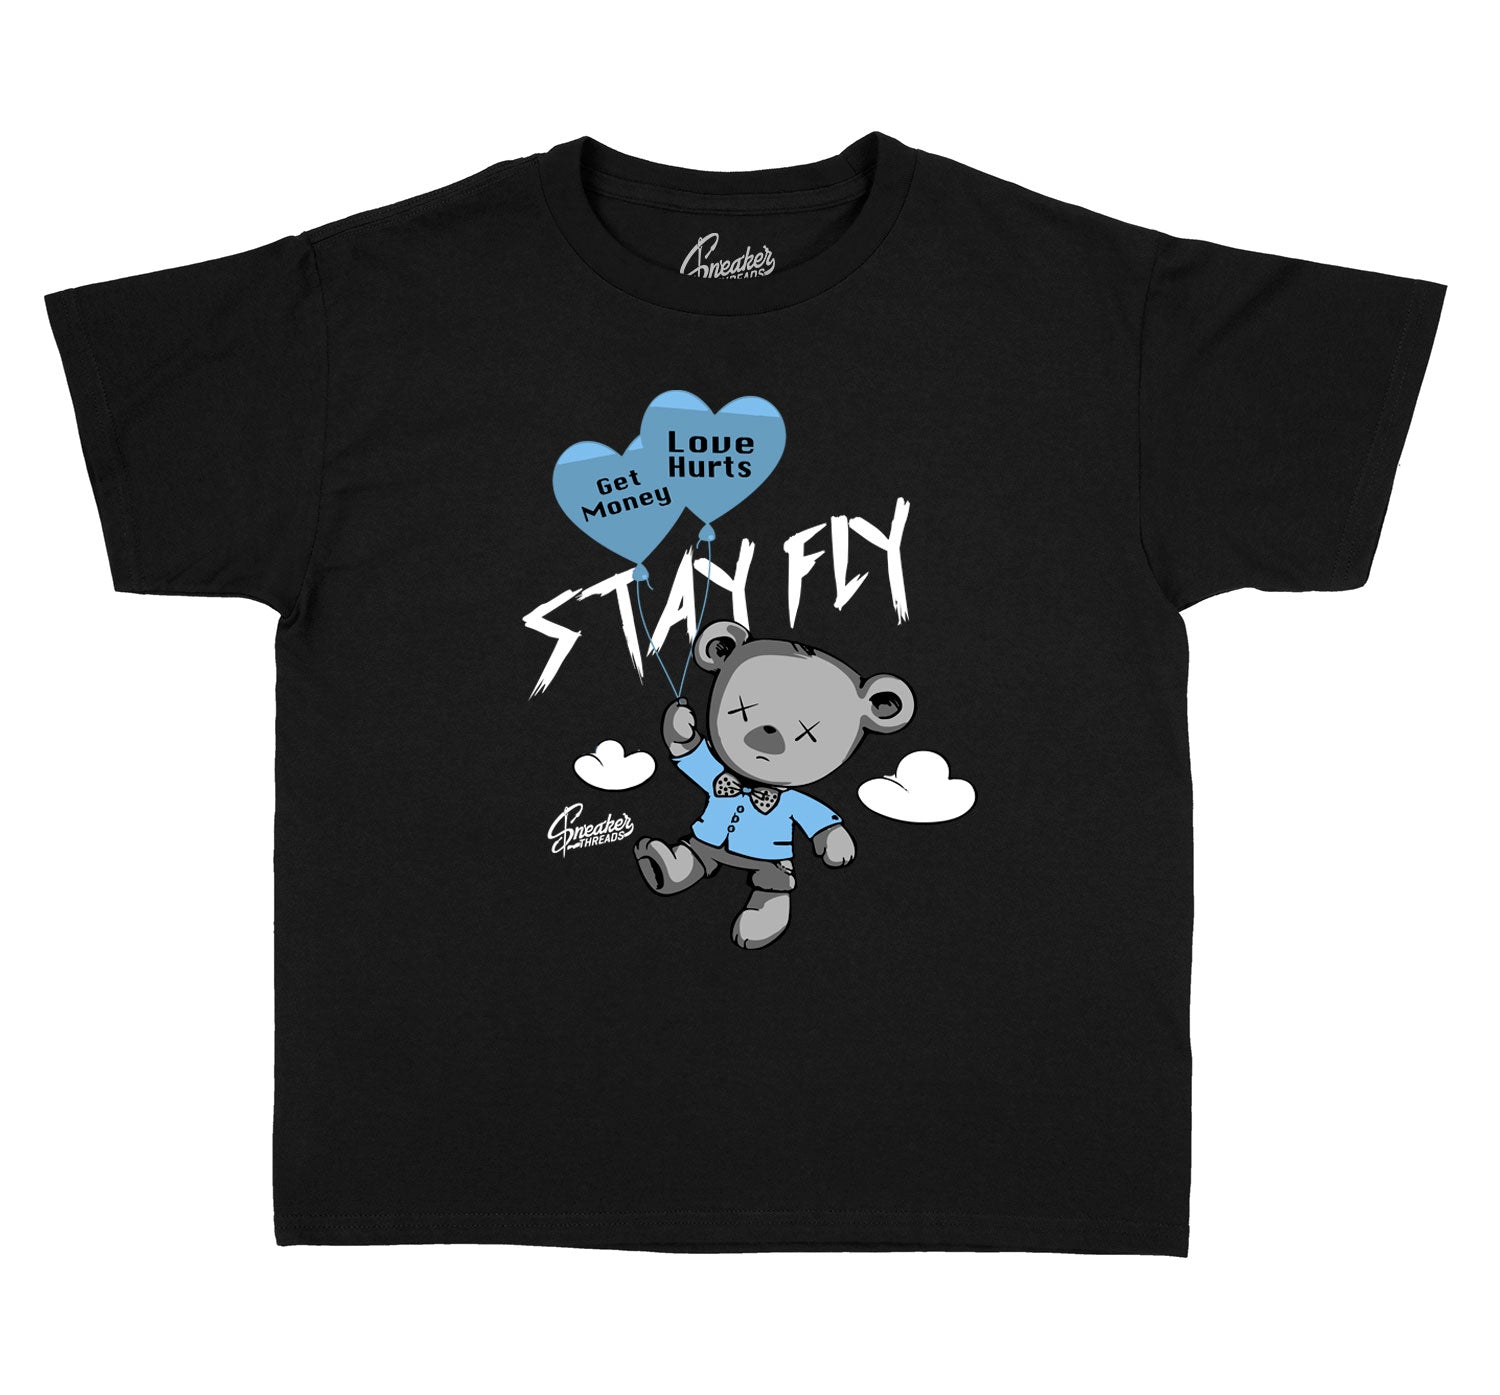 Kids University Blue 1 Shirt - Money Over Love - Black